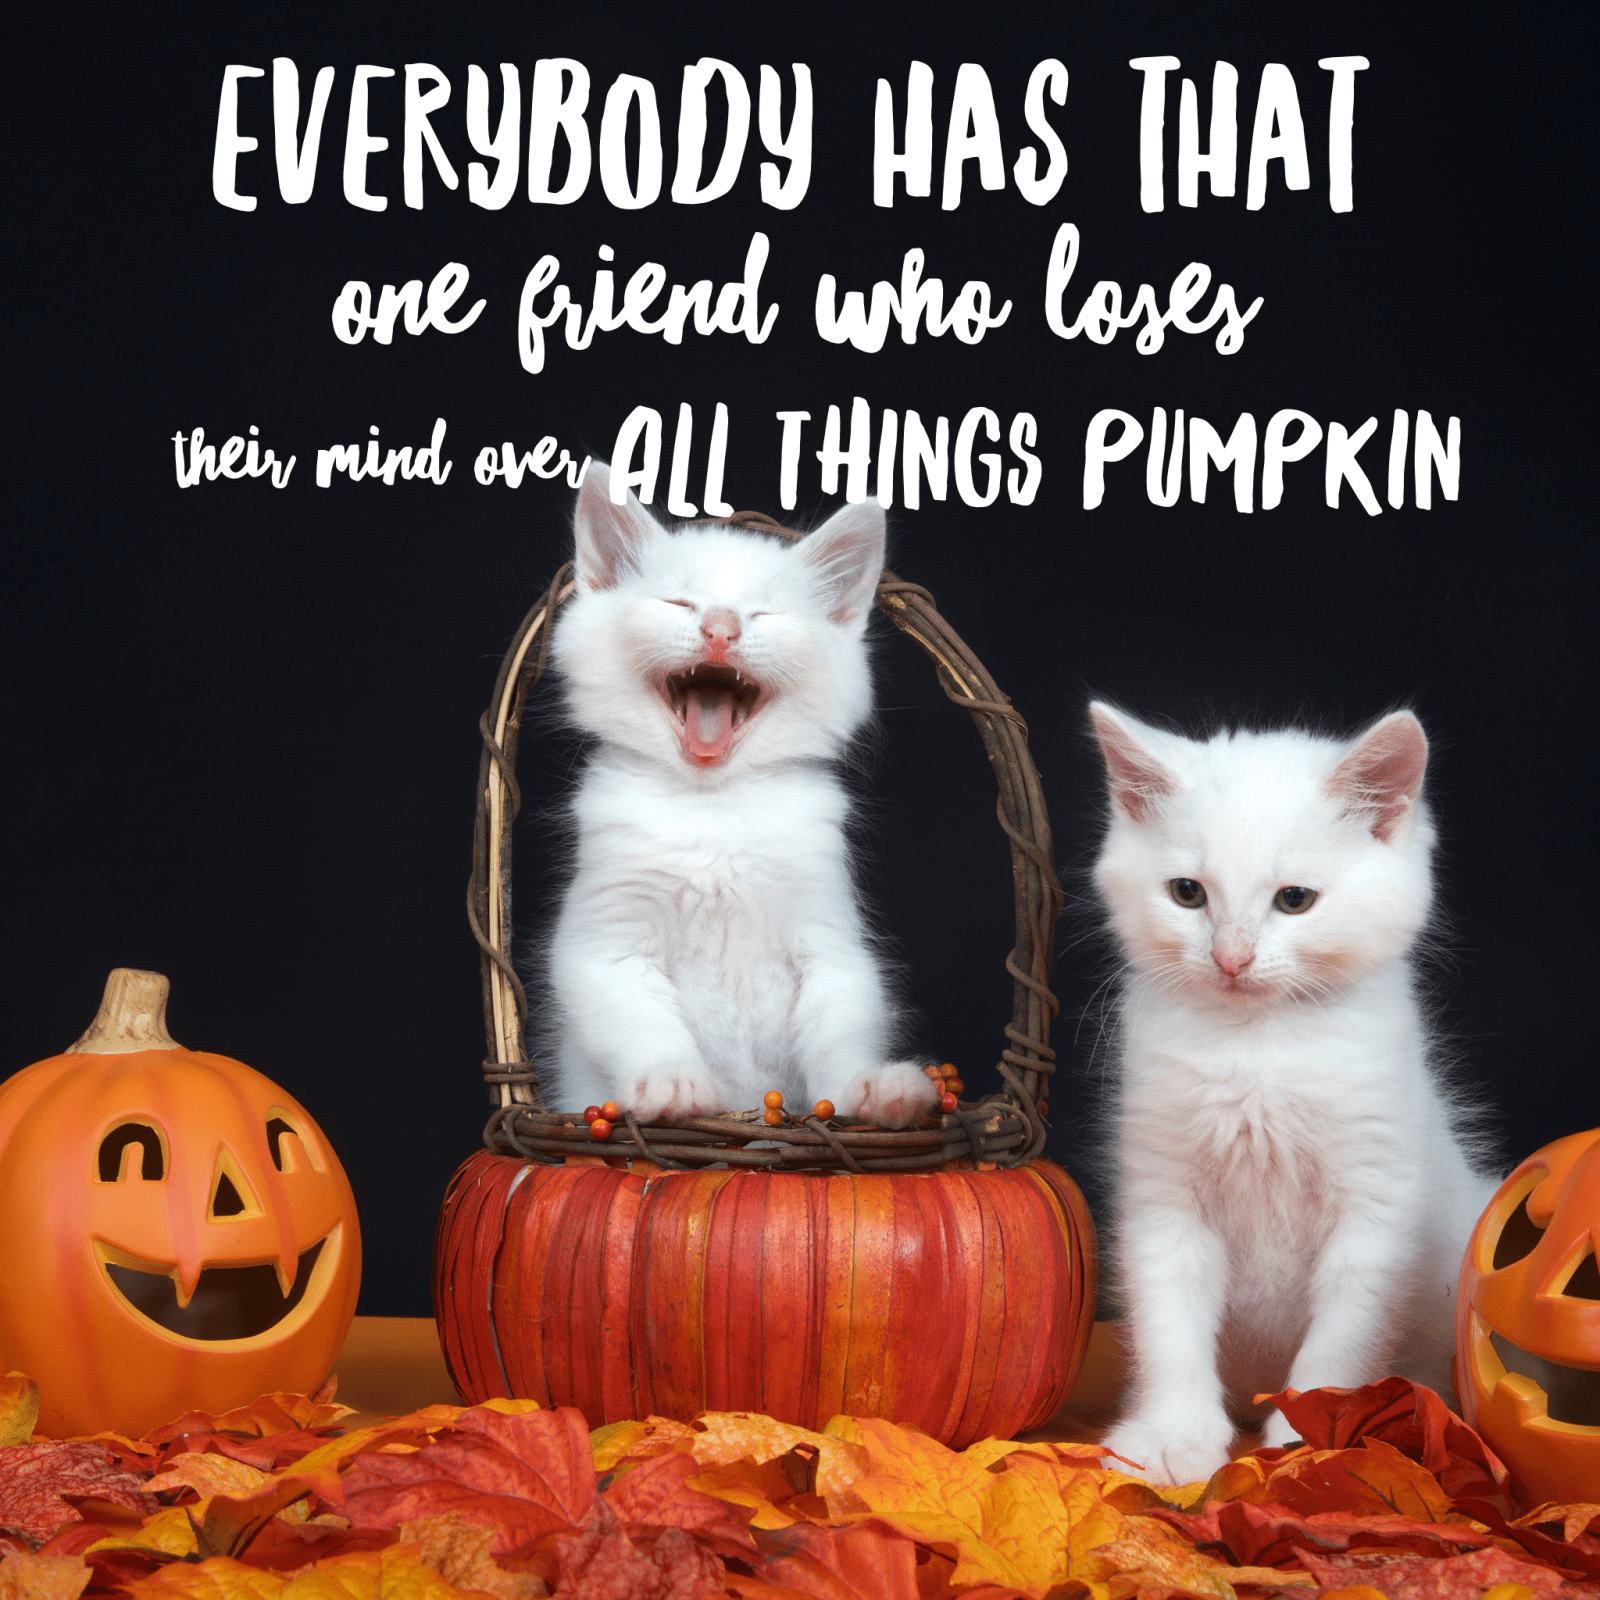 Halloween Memes - funny halloween memes to share via Misty Nelson , Frosted Blog @frostedevents #halloweenmemes #halloween